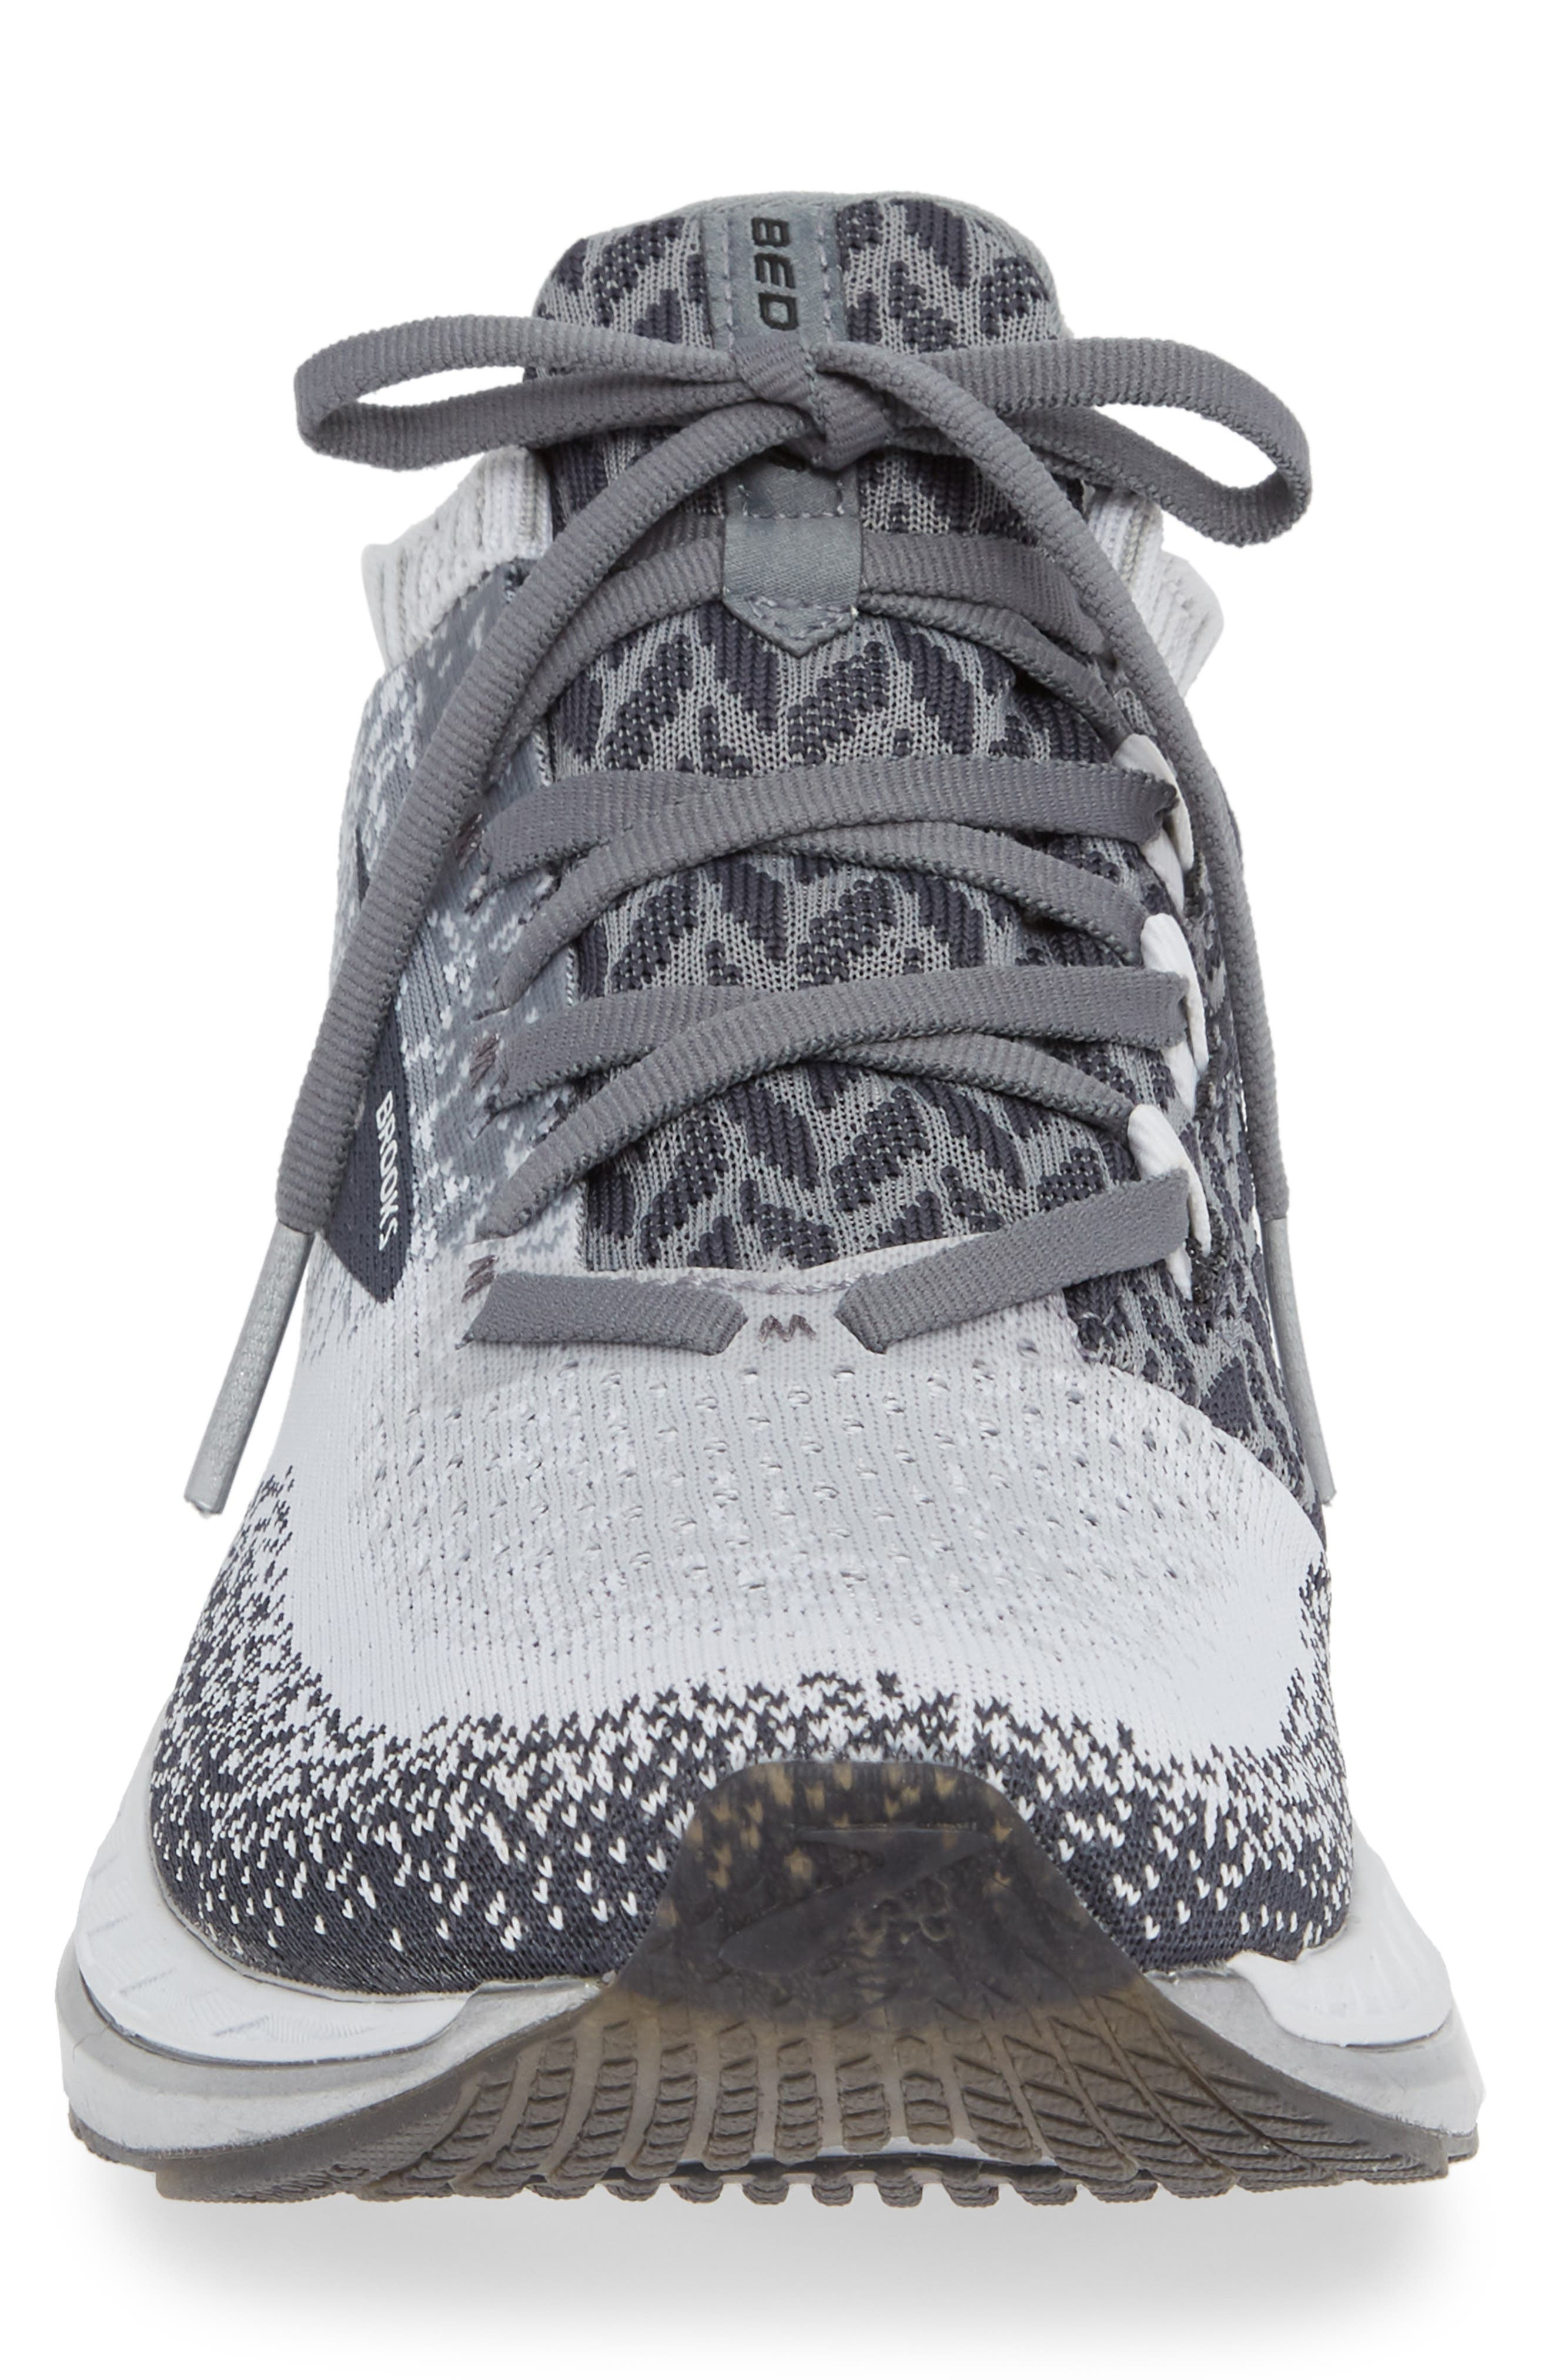 Bedlam Running Shoe,                             Alternate thumbnail 4, color,                             GREY/ WHITE/ EBONY